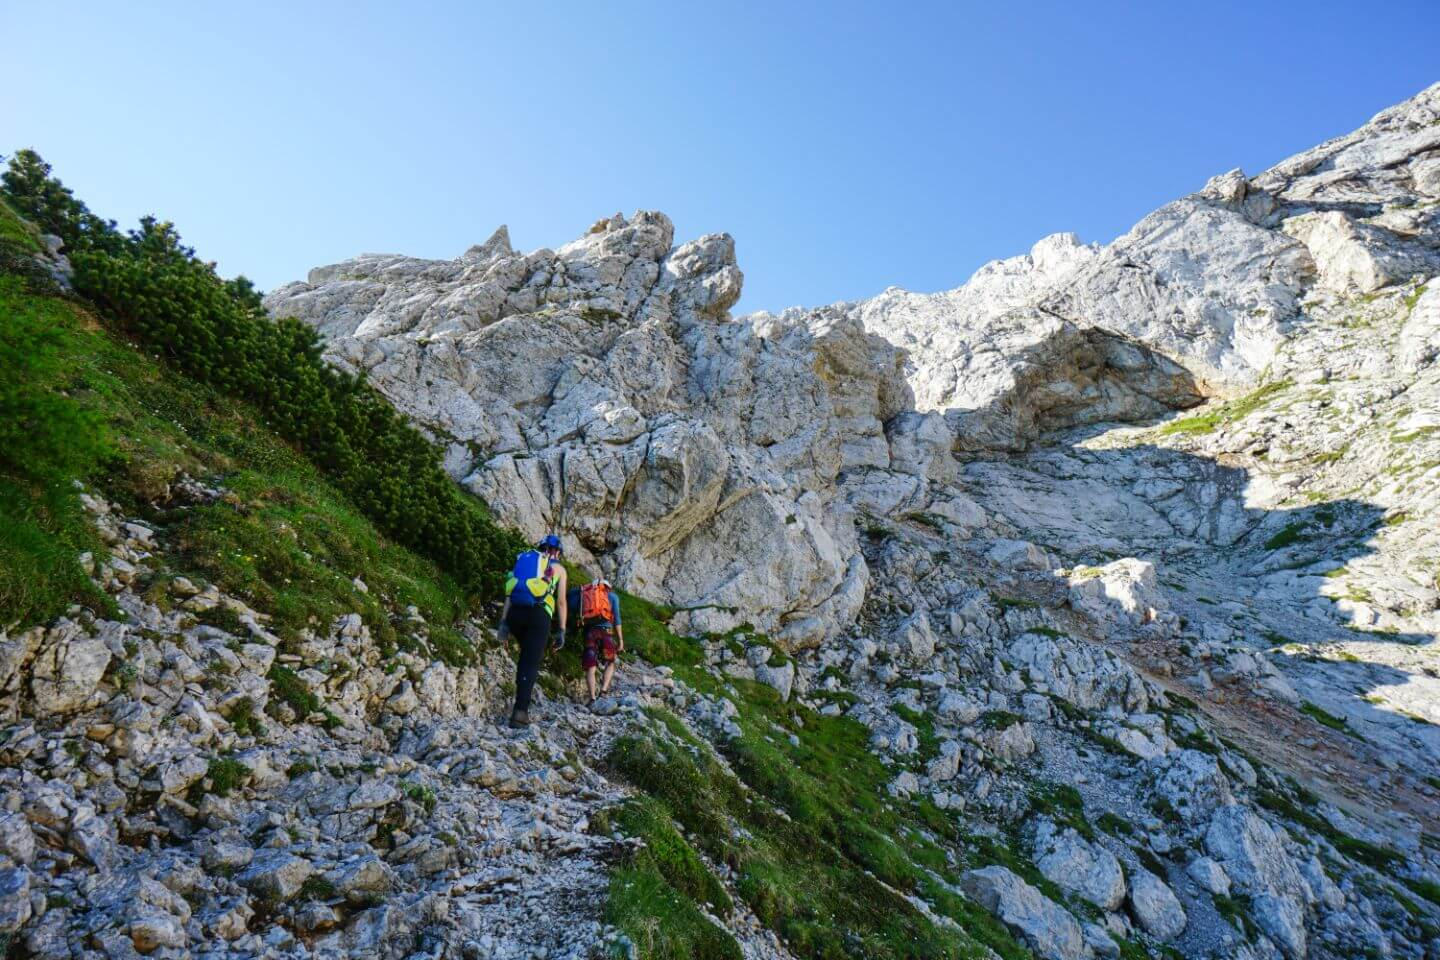 Hiking to the Kamnik Saddle from Logar Valley